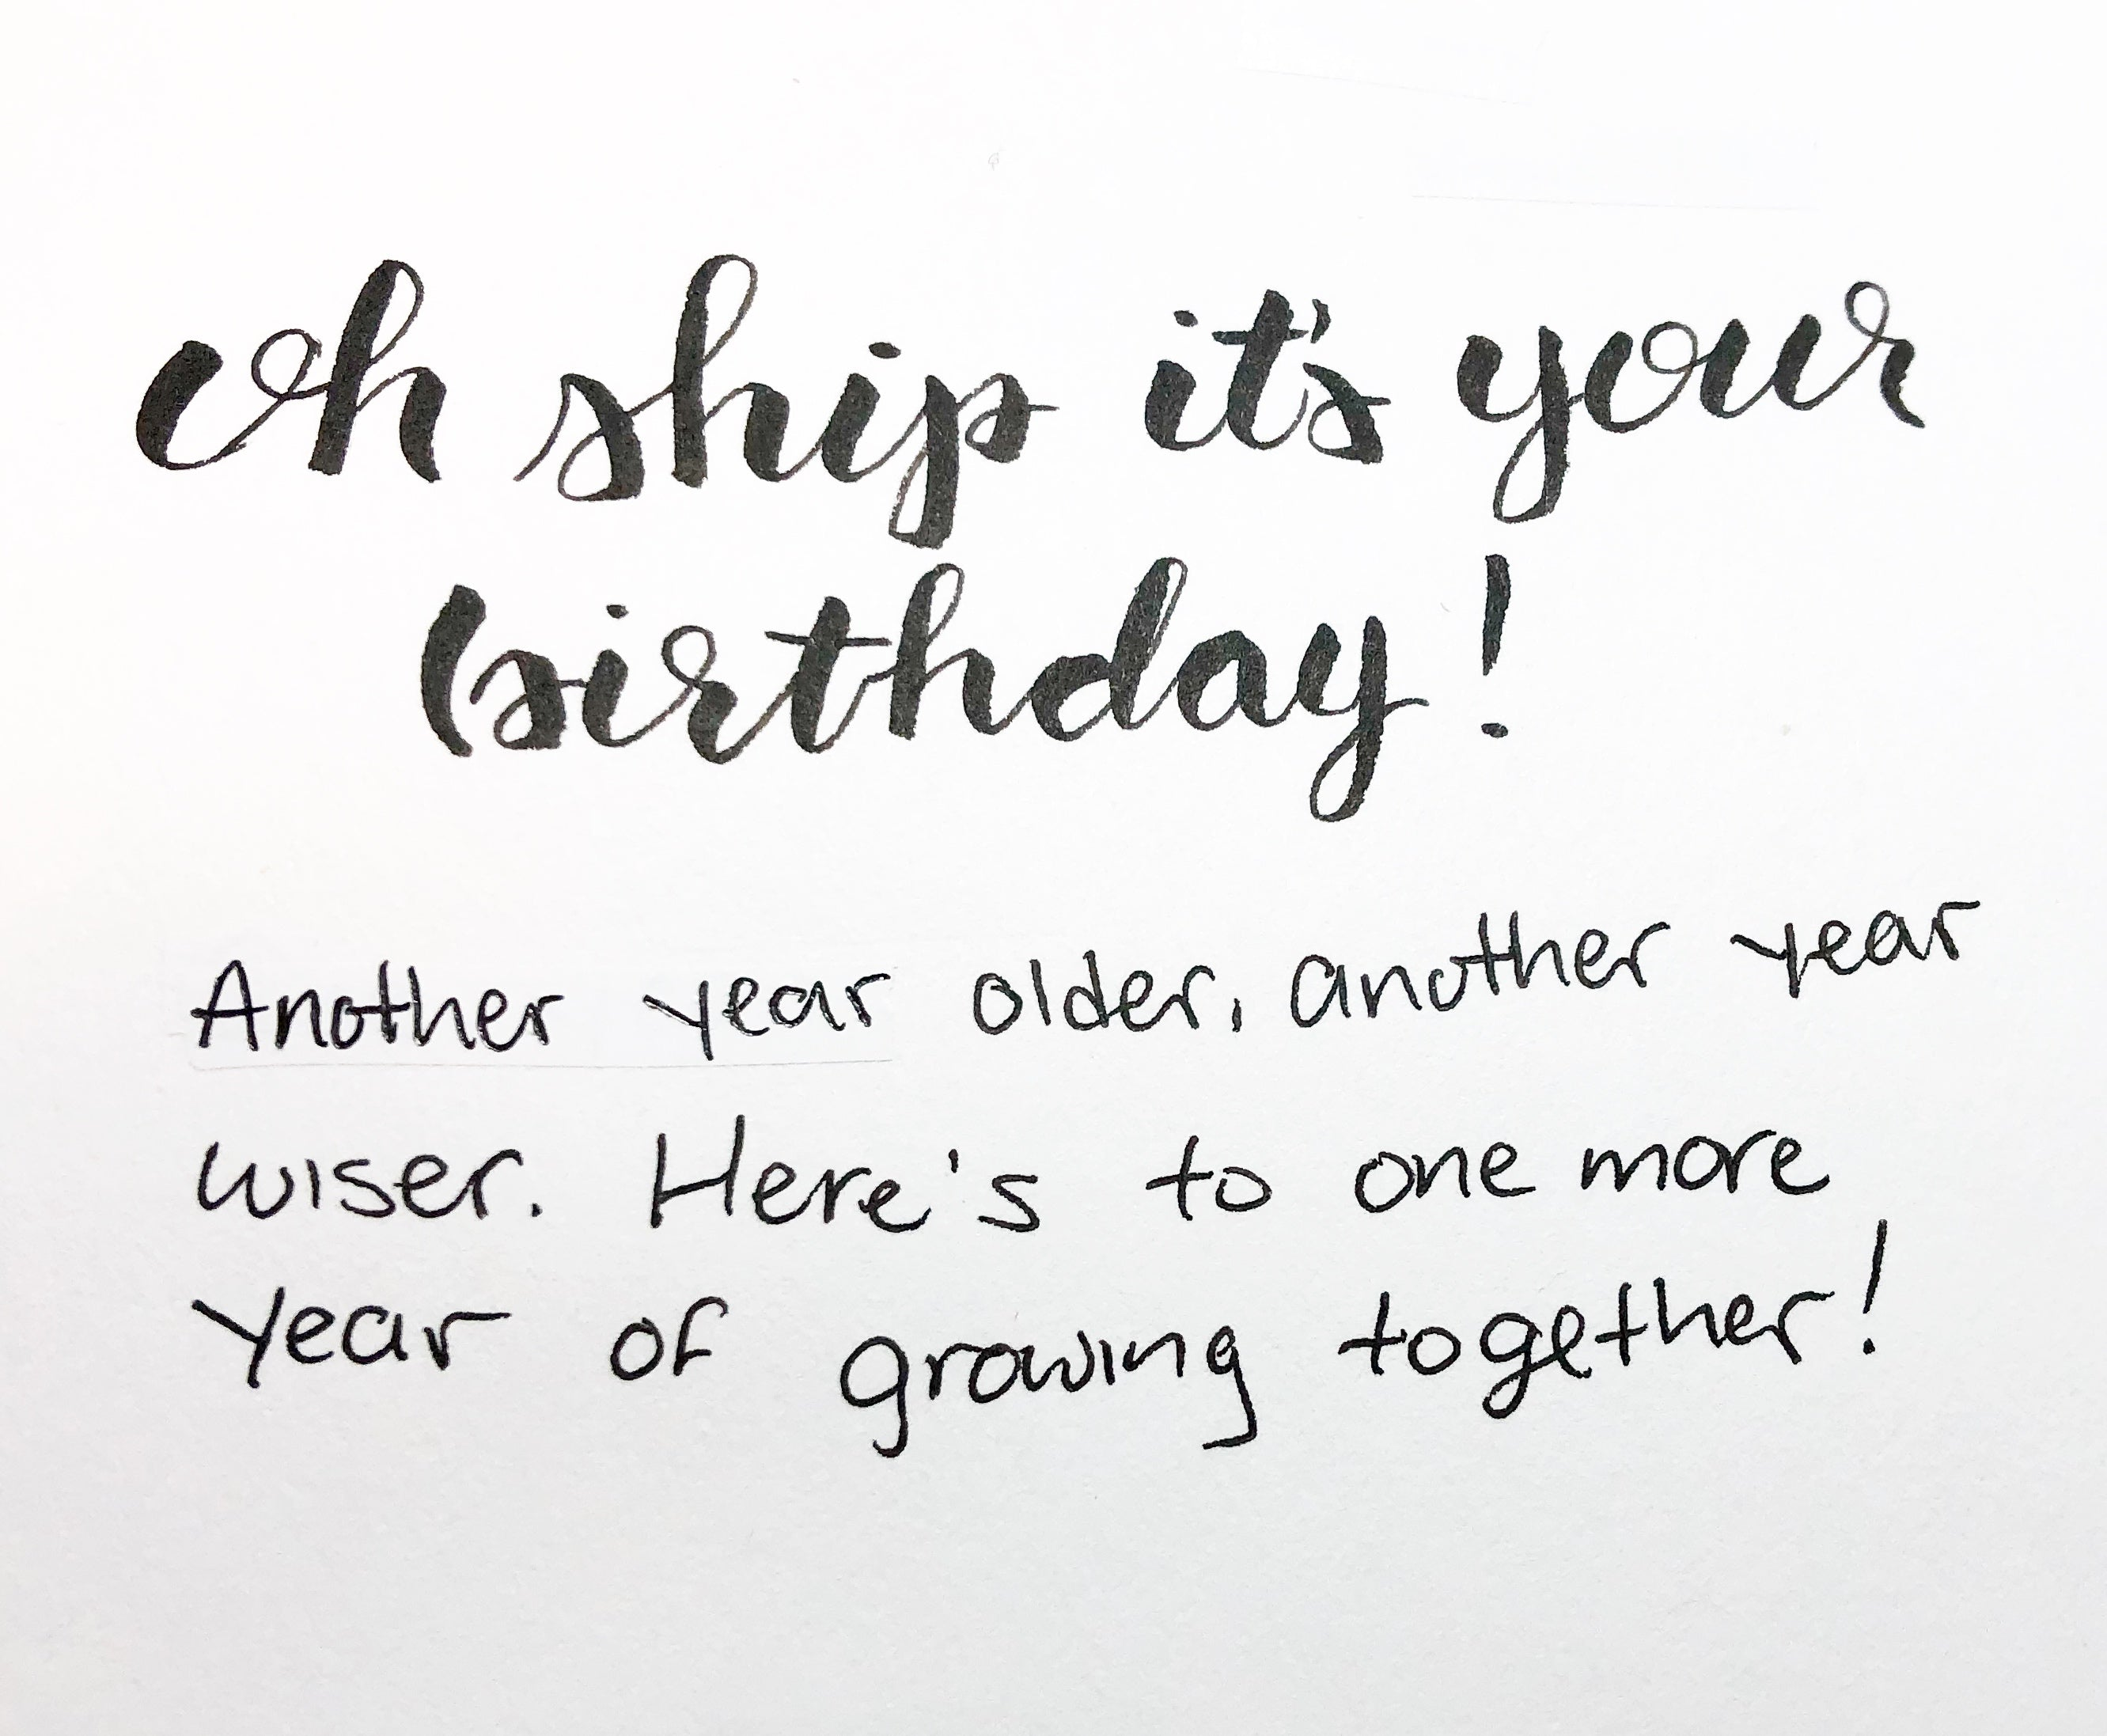 Oh ship it's your birthday! Another year, another year wiser. Here's to one more year of growing together! | Thoughtfully Handmade